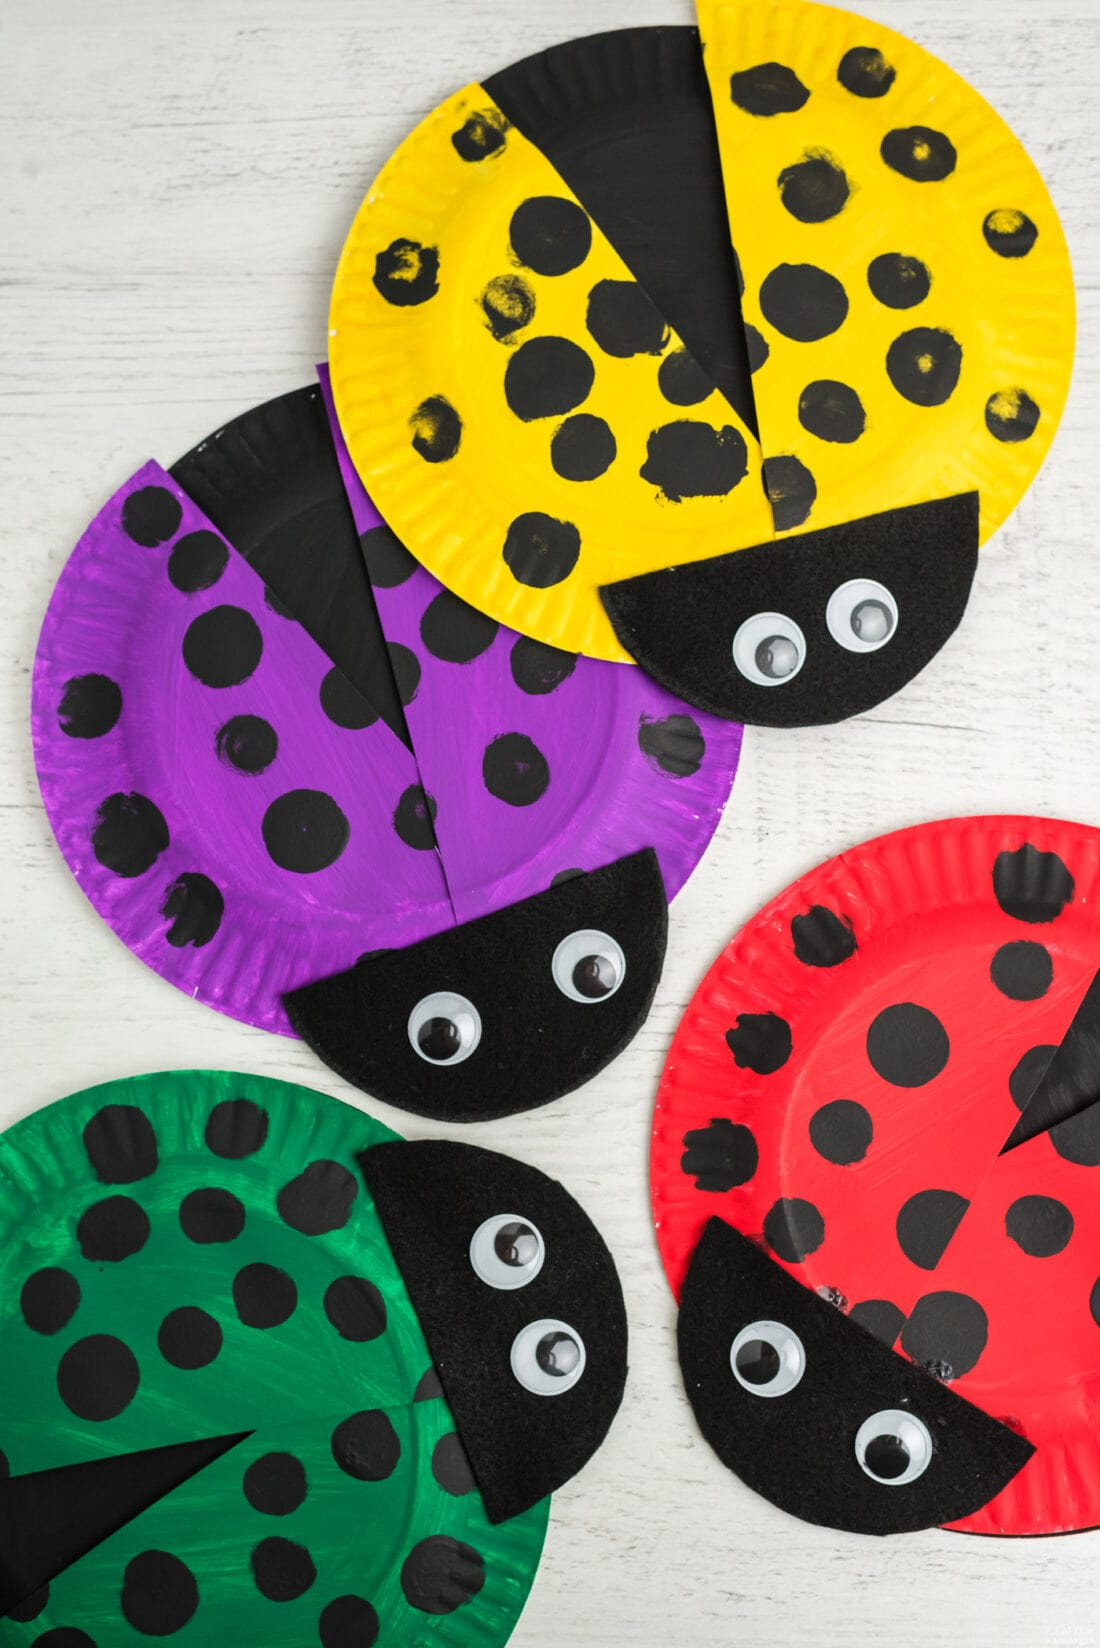 4 ladybugs made from paper plates